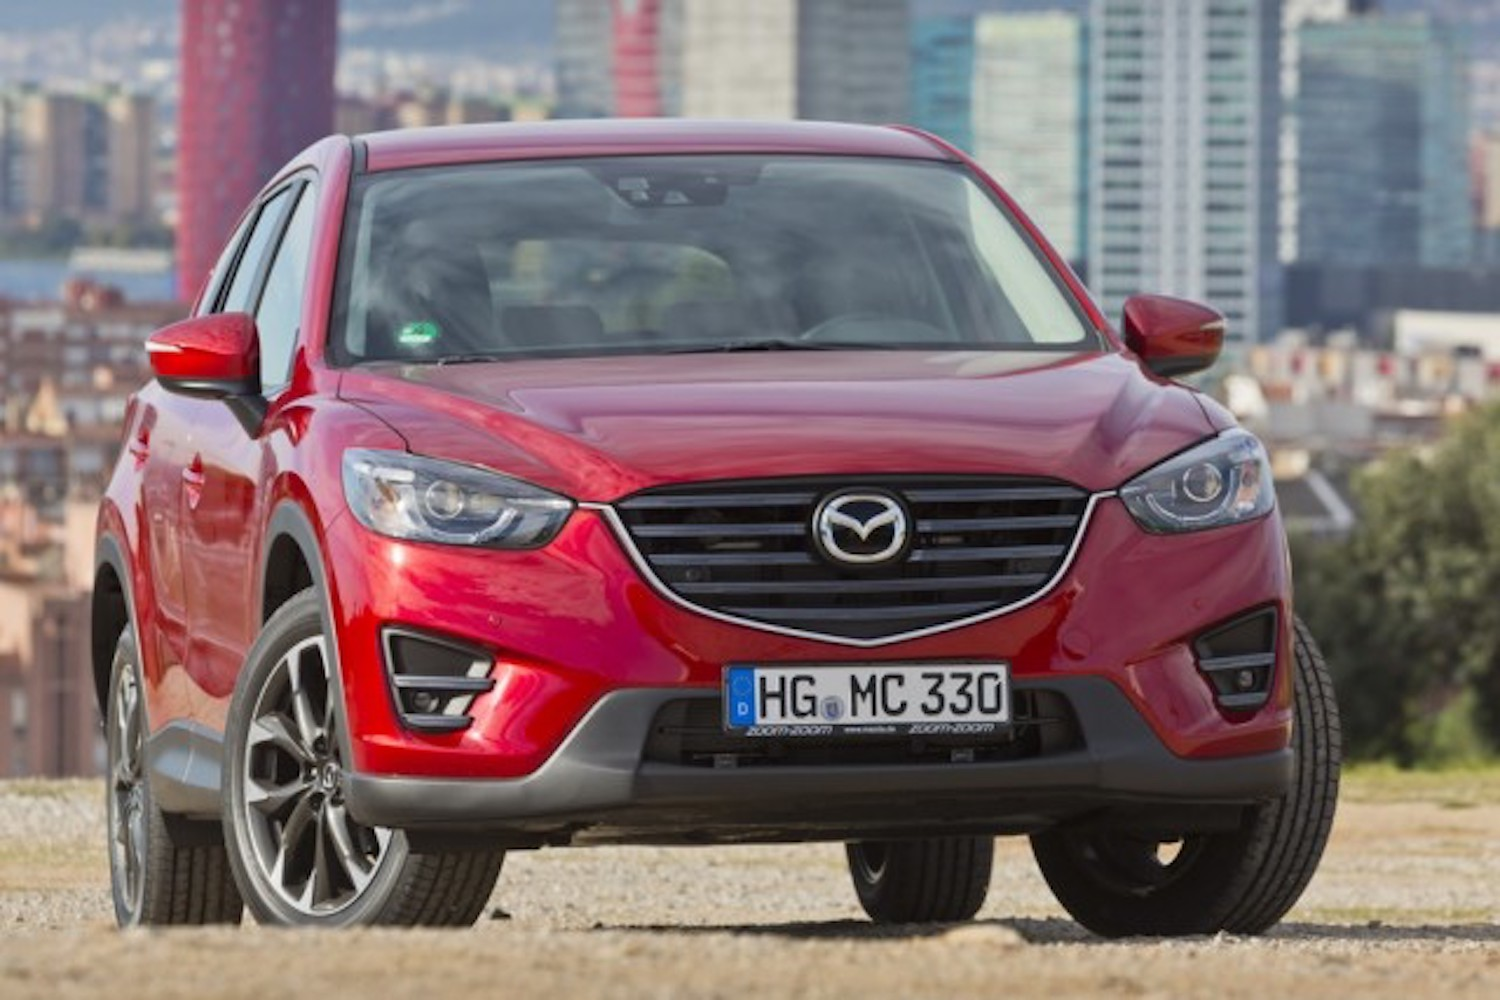 Car News | Mazda recalls over 10,000 cars in Ireland | CompleteCar.ie